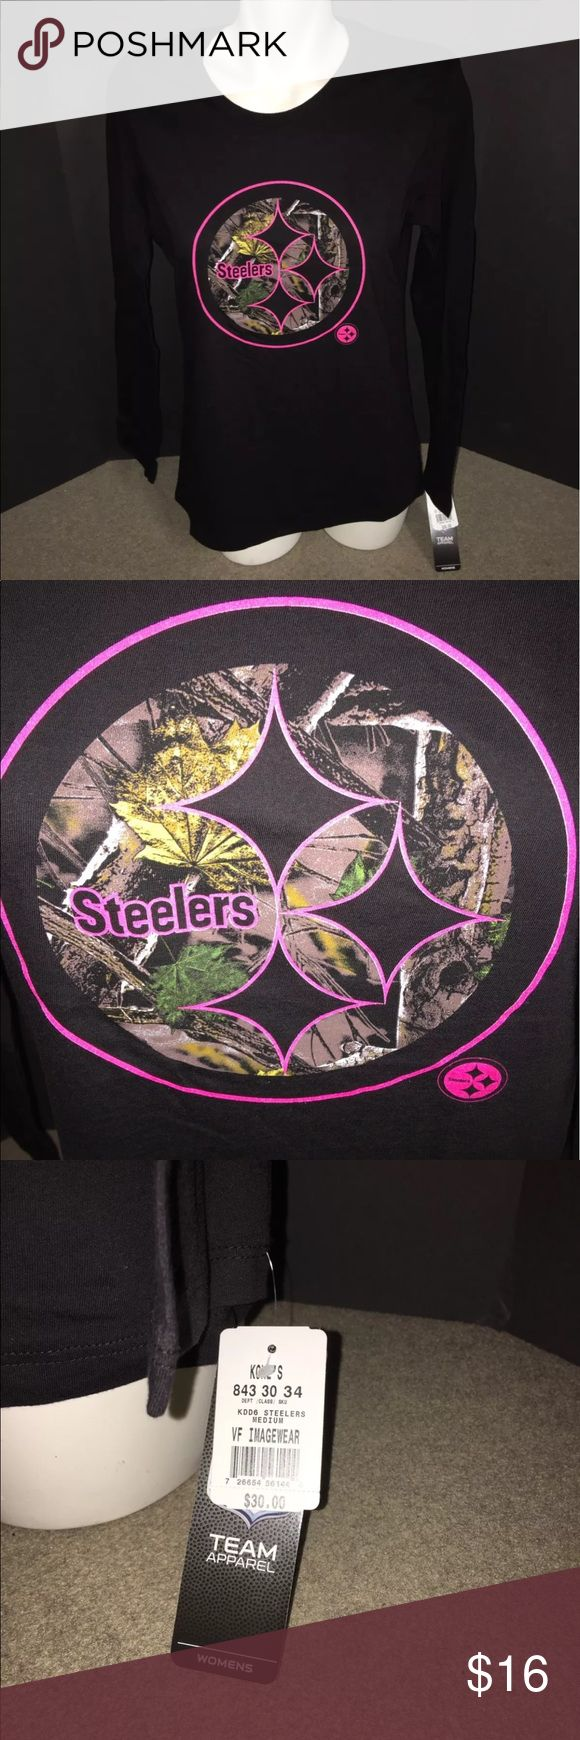 NWT Majestic Pittsburgh Steelers Women's Shirt Med Brand new with tags Ships as shown in the pictures  Majestic Pittsburgh Steelers NFL LongSleeve Pink Camouflage logo on chest Women's Size Medium Majestic Tops Tees - Long Sleeve